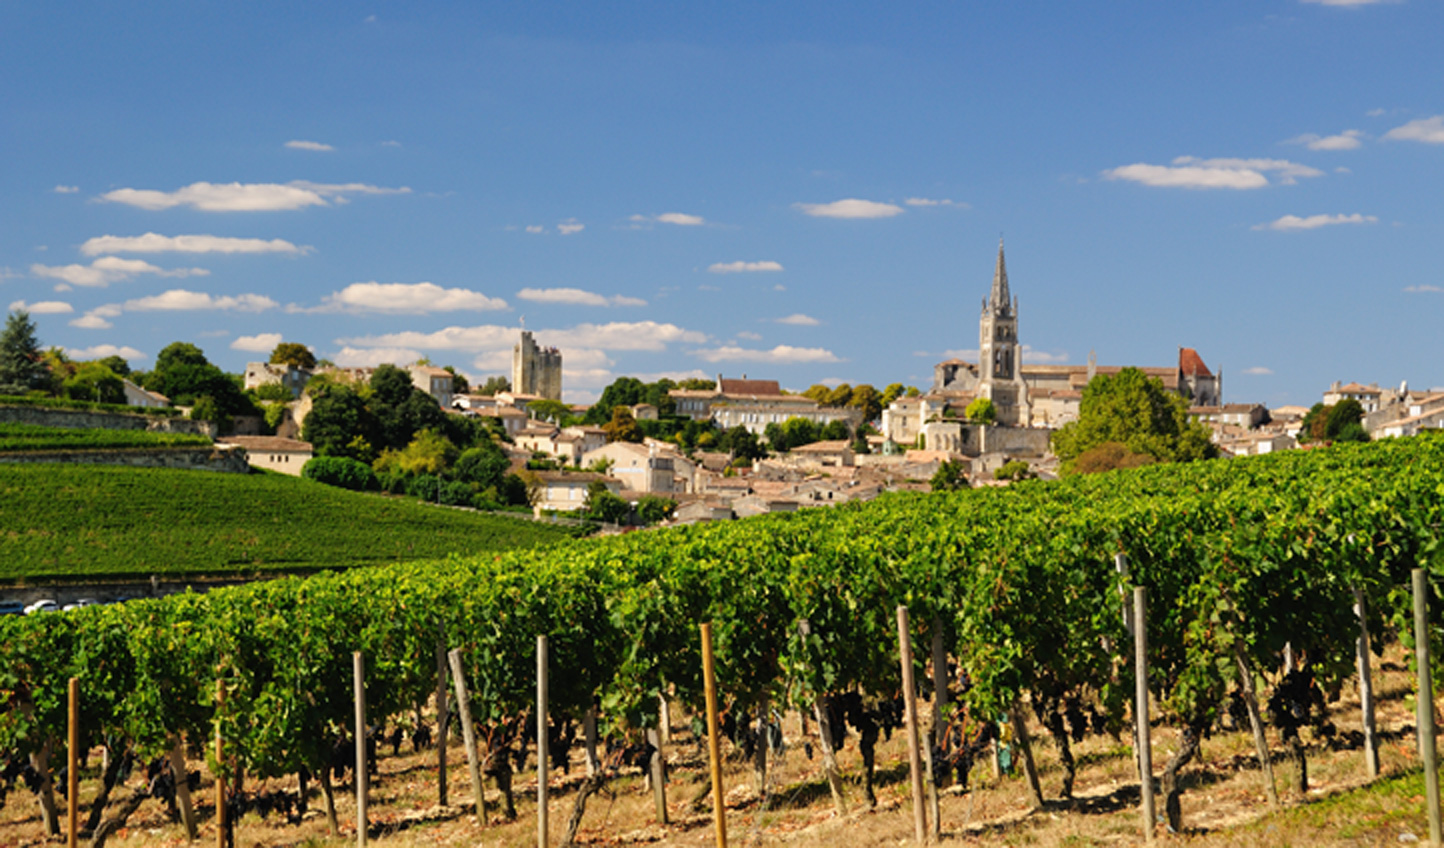 Visit the historic town of Saint Émilion and have your first wine tasting session